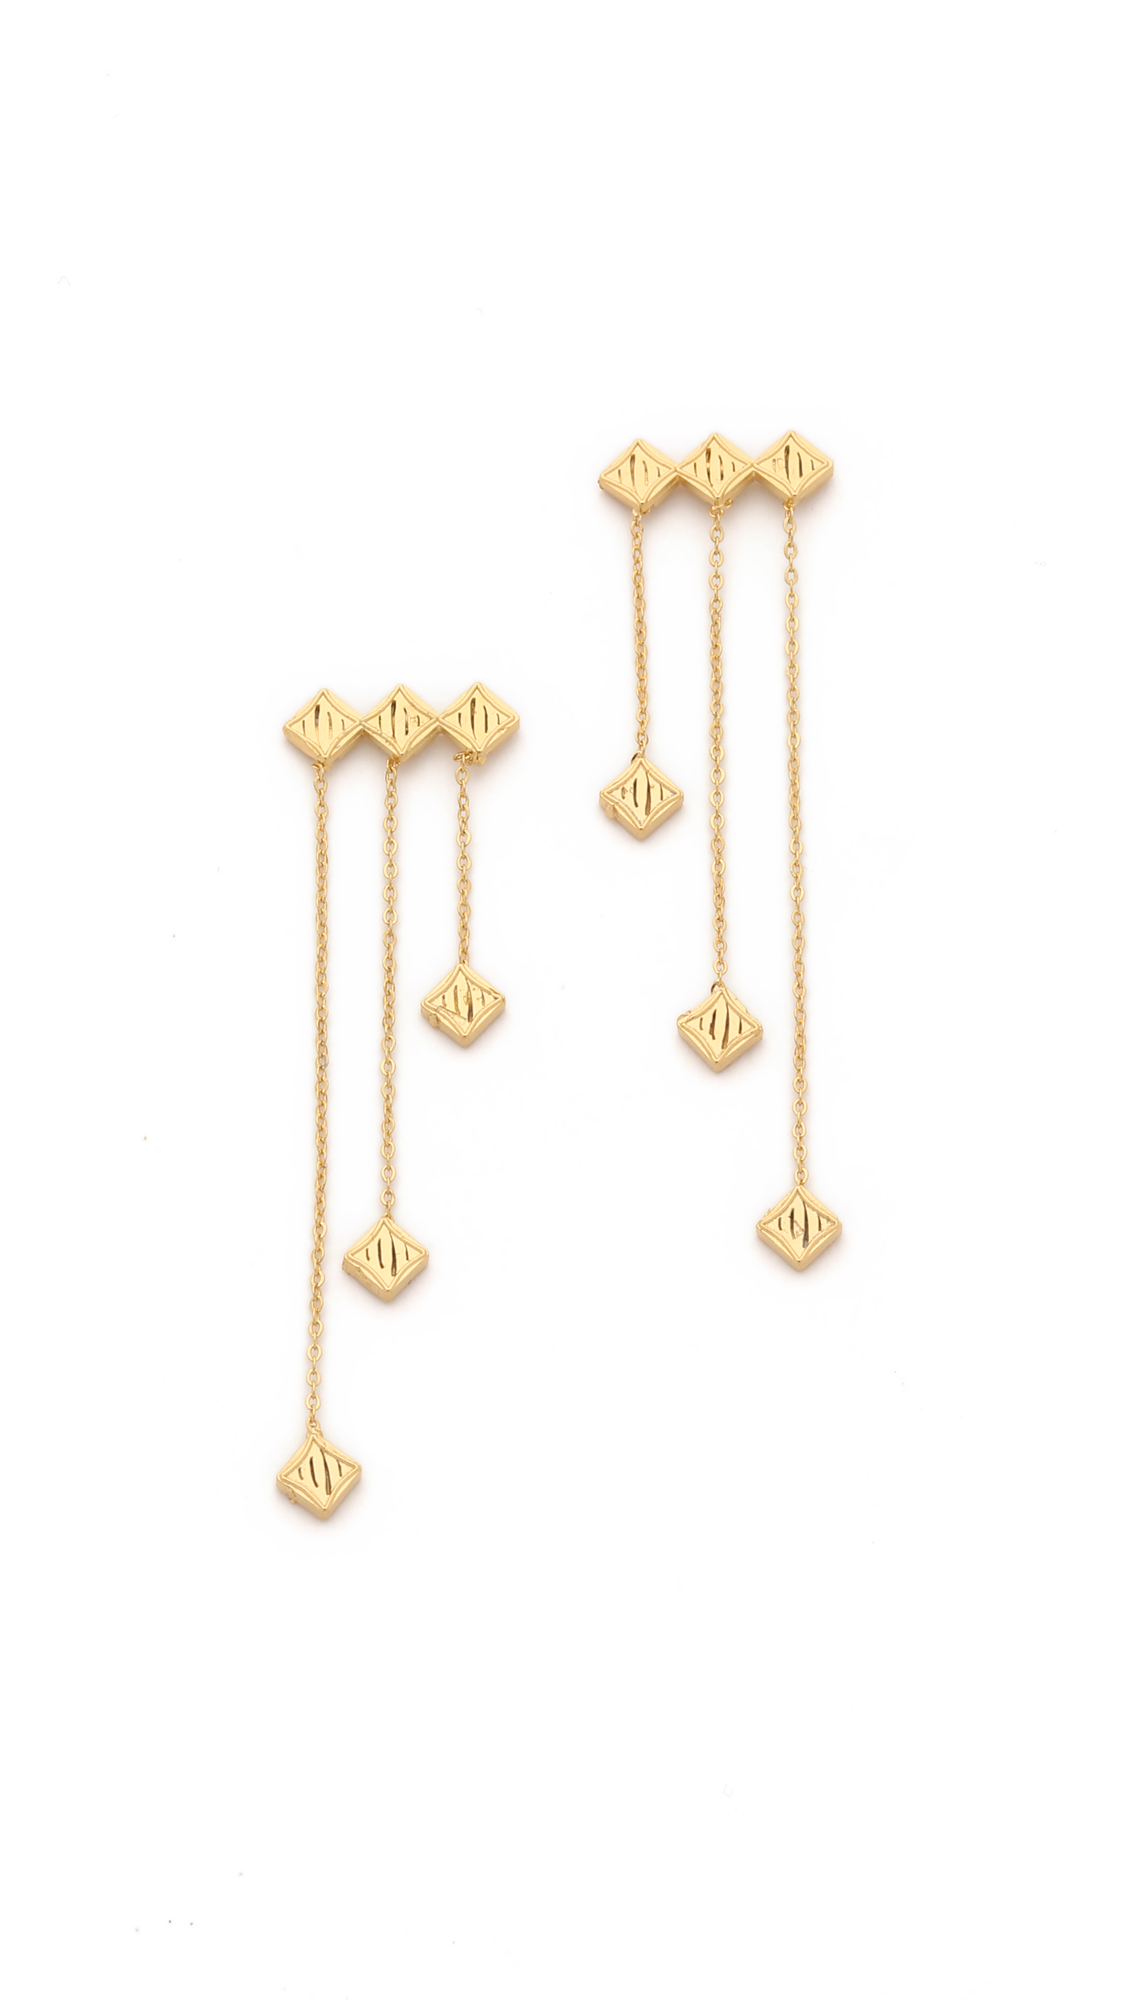 Lyst - Vanessa mooney Thunderstruck Hanging Earrings - Gold/clear ...